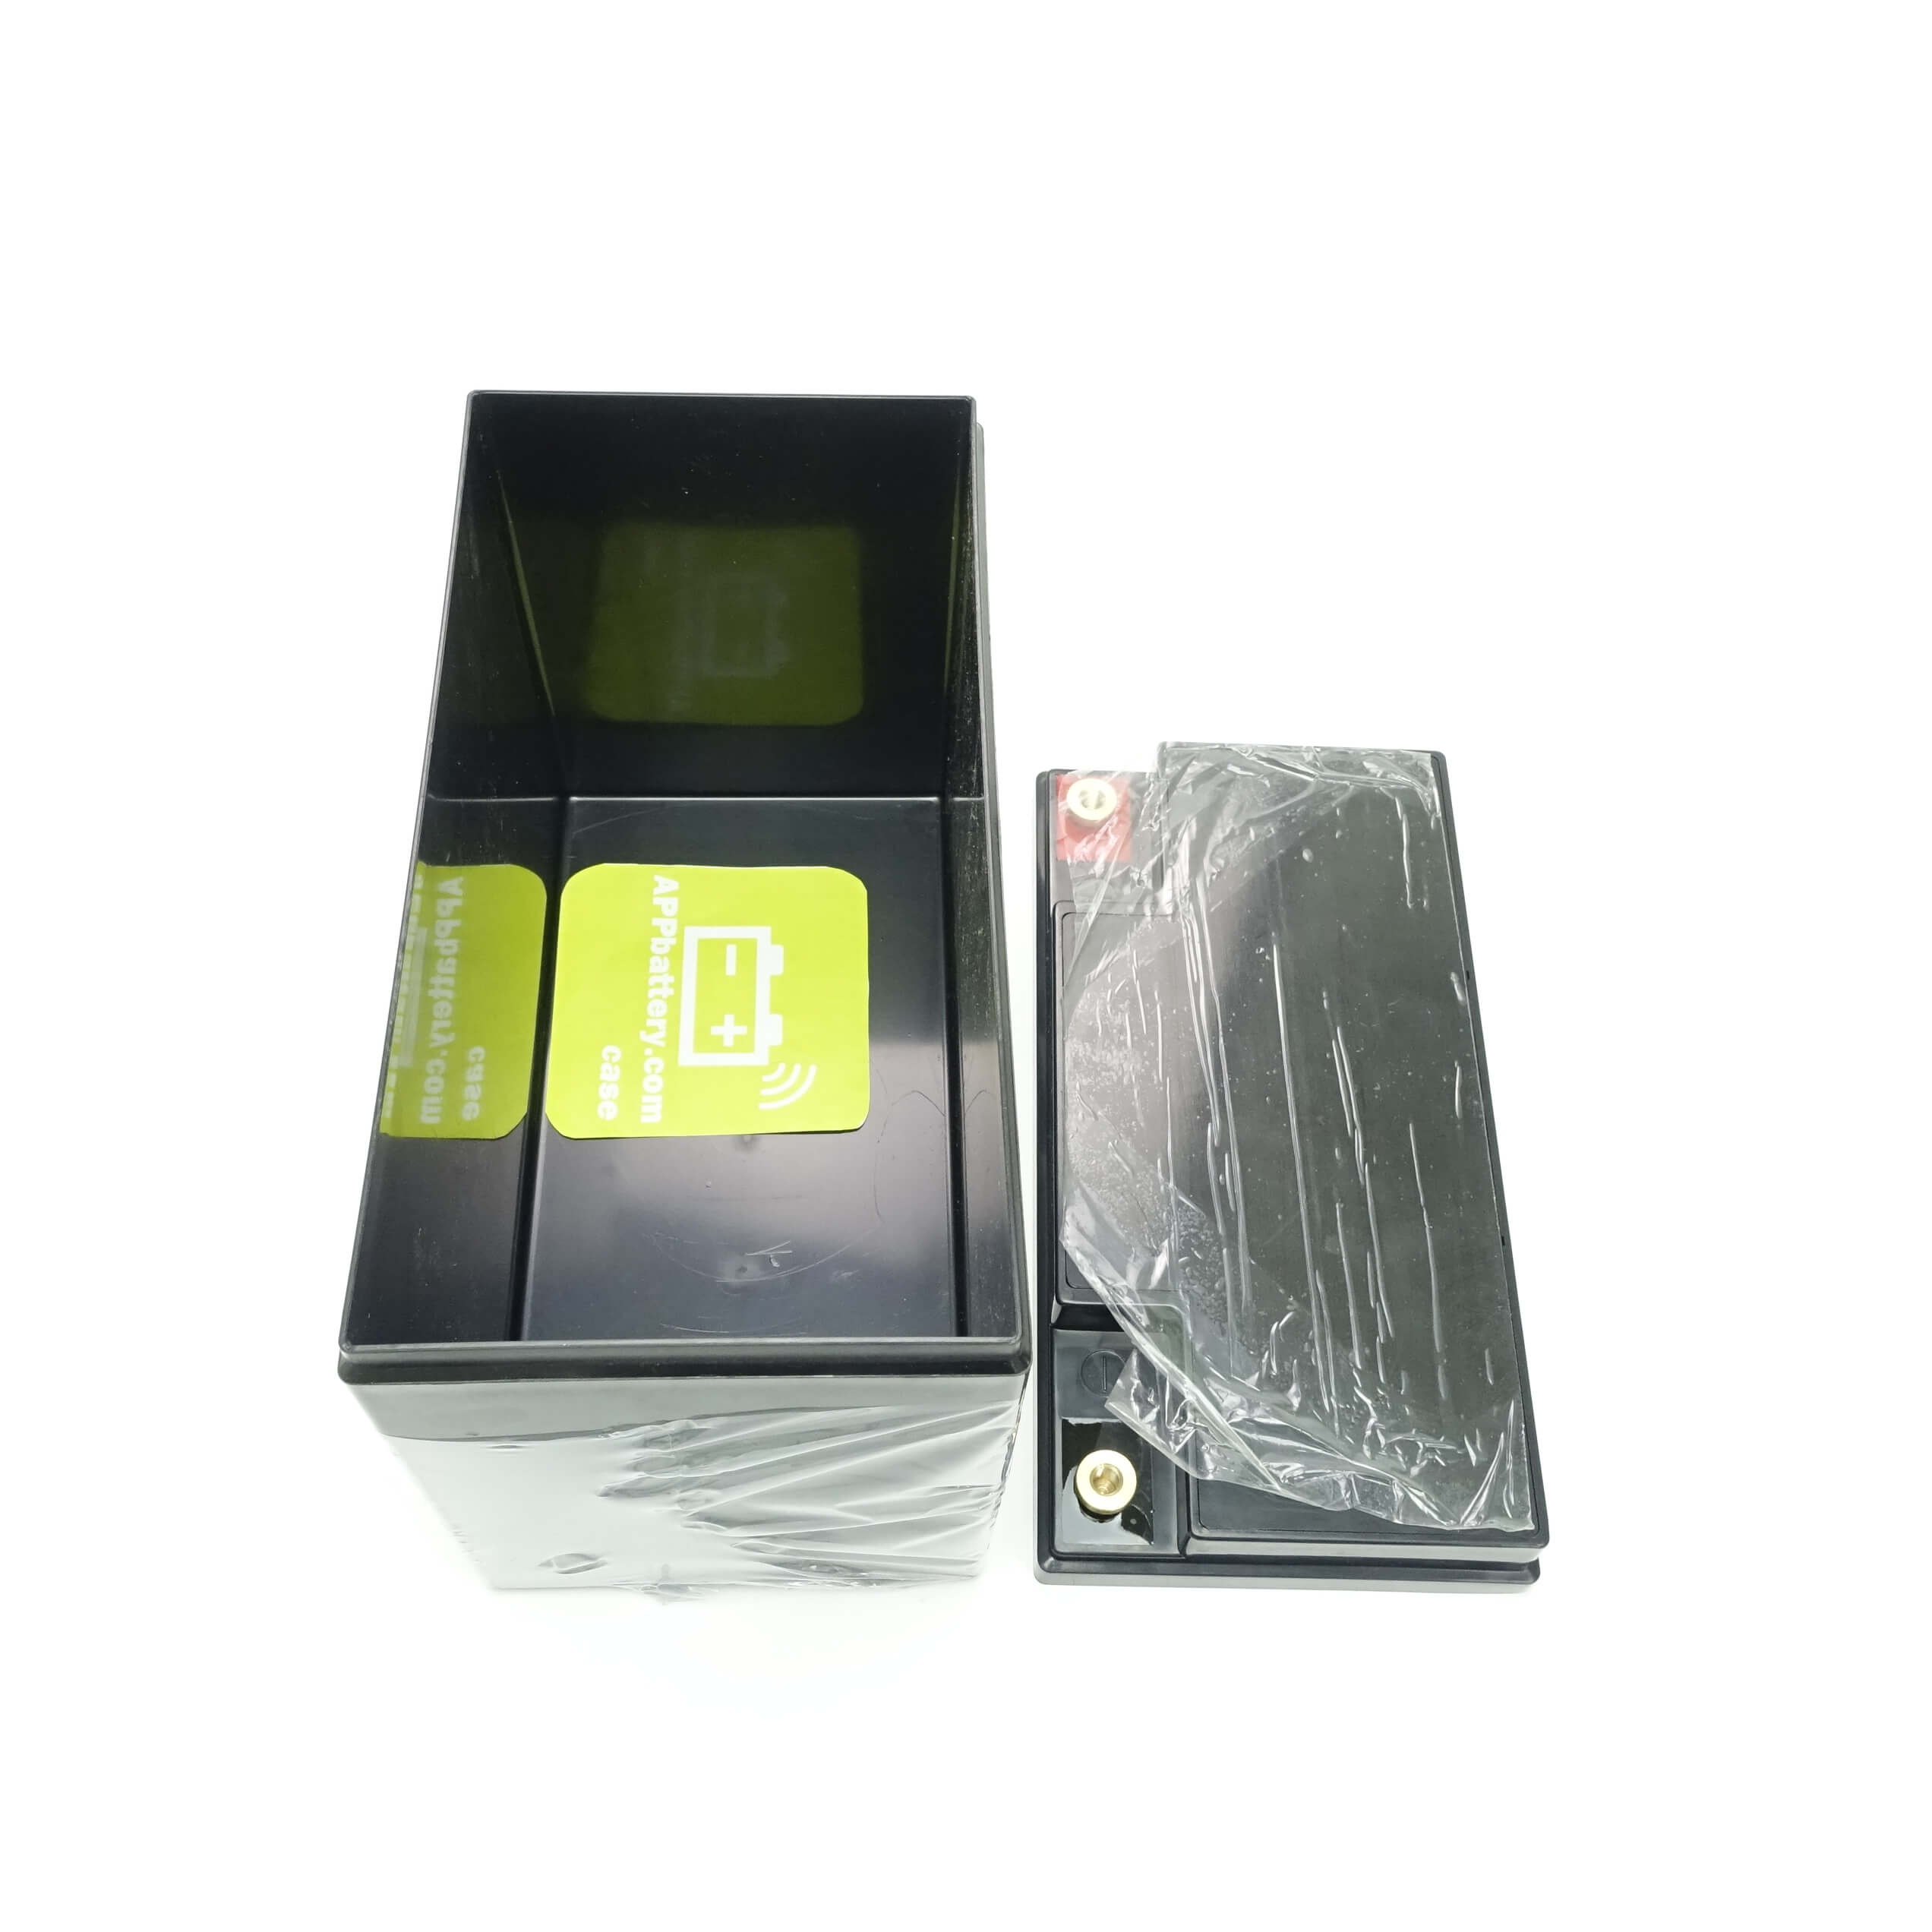 EJ12-60A empty battery box for 18650 26650 32650 prismatic lithium cells